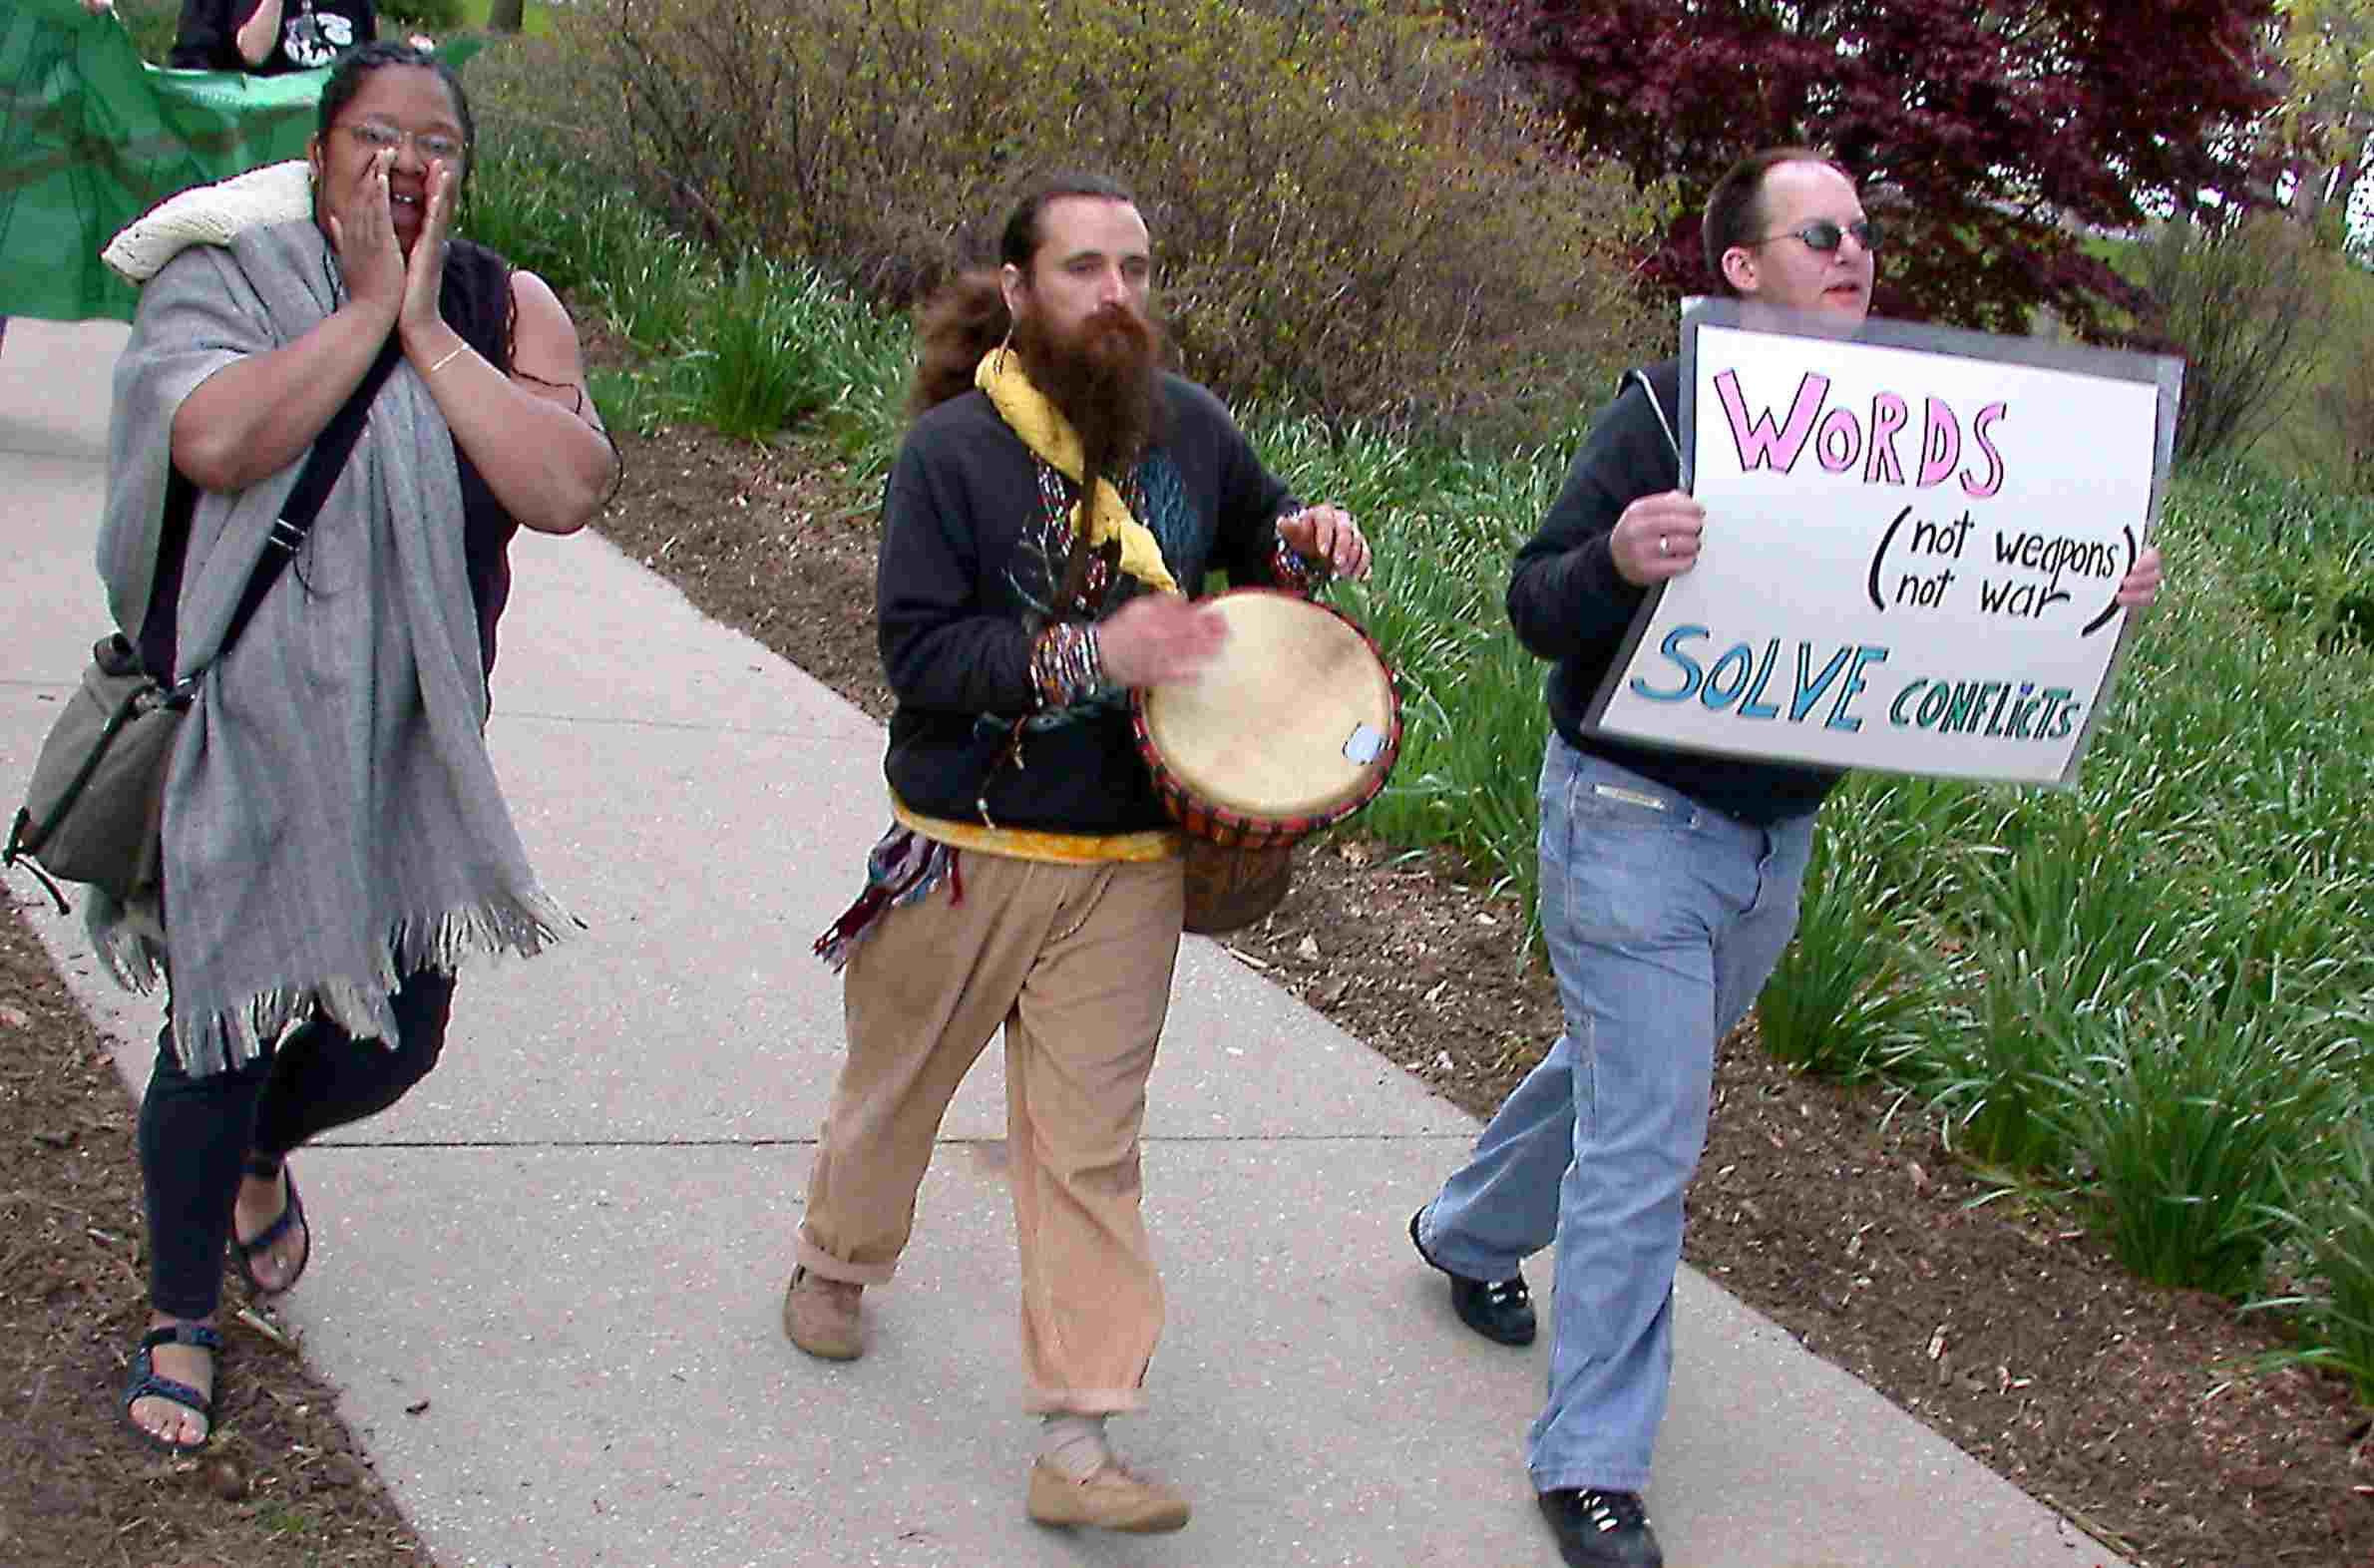 A woman shouts, a bearded man plays a drum, and another man holds a protest sign.